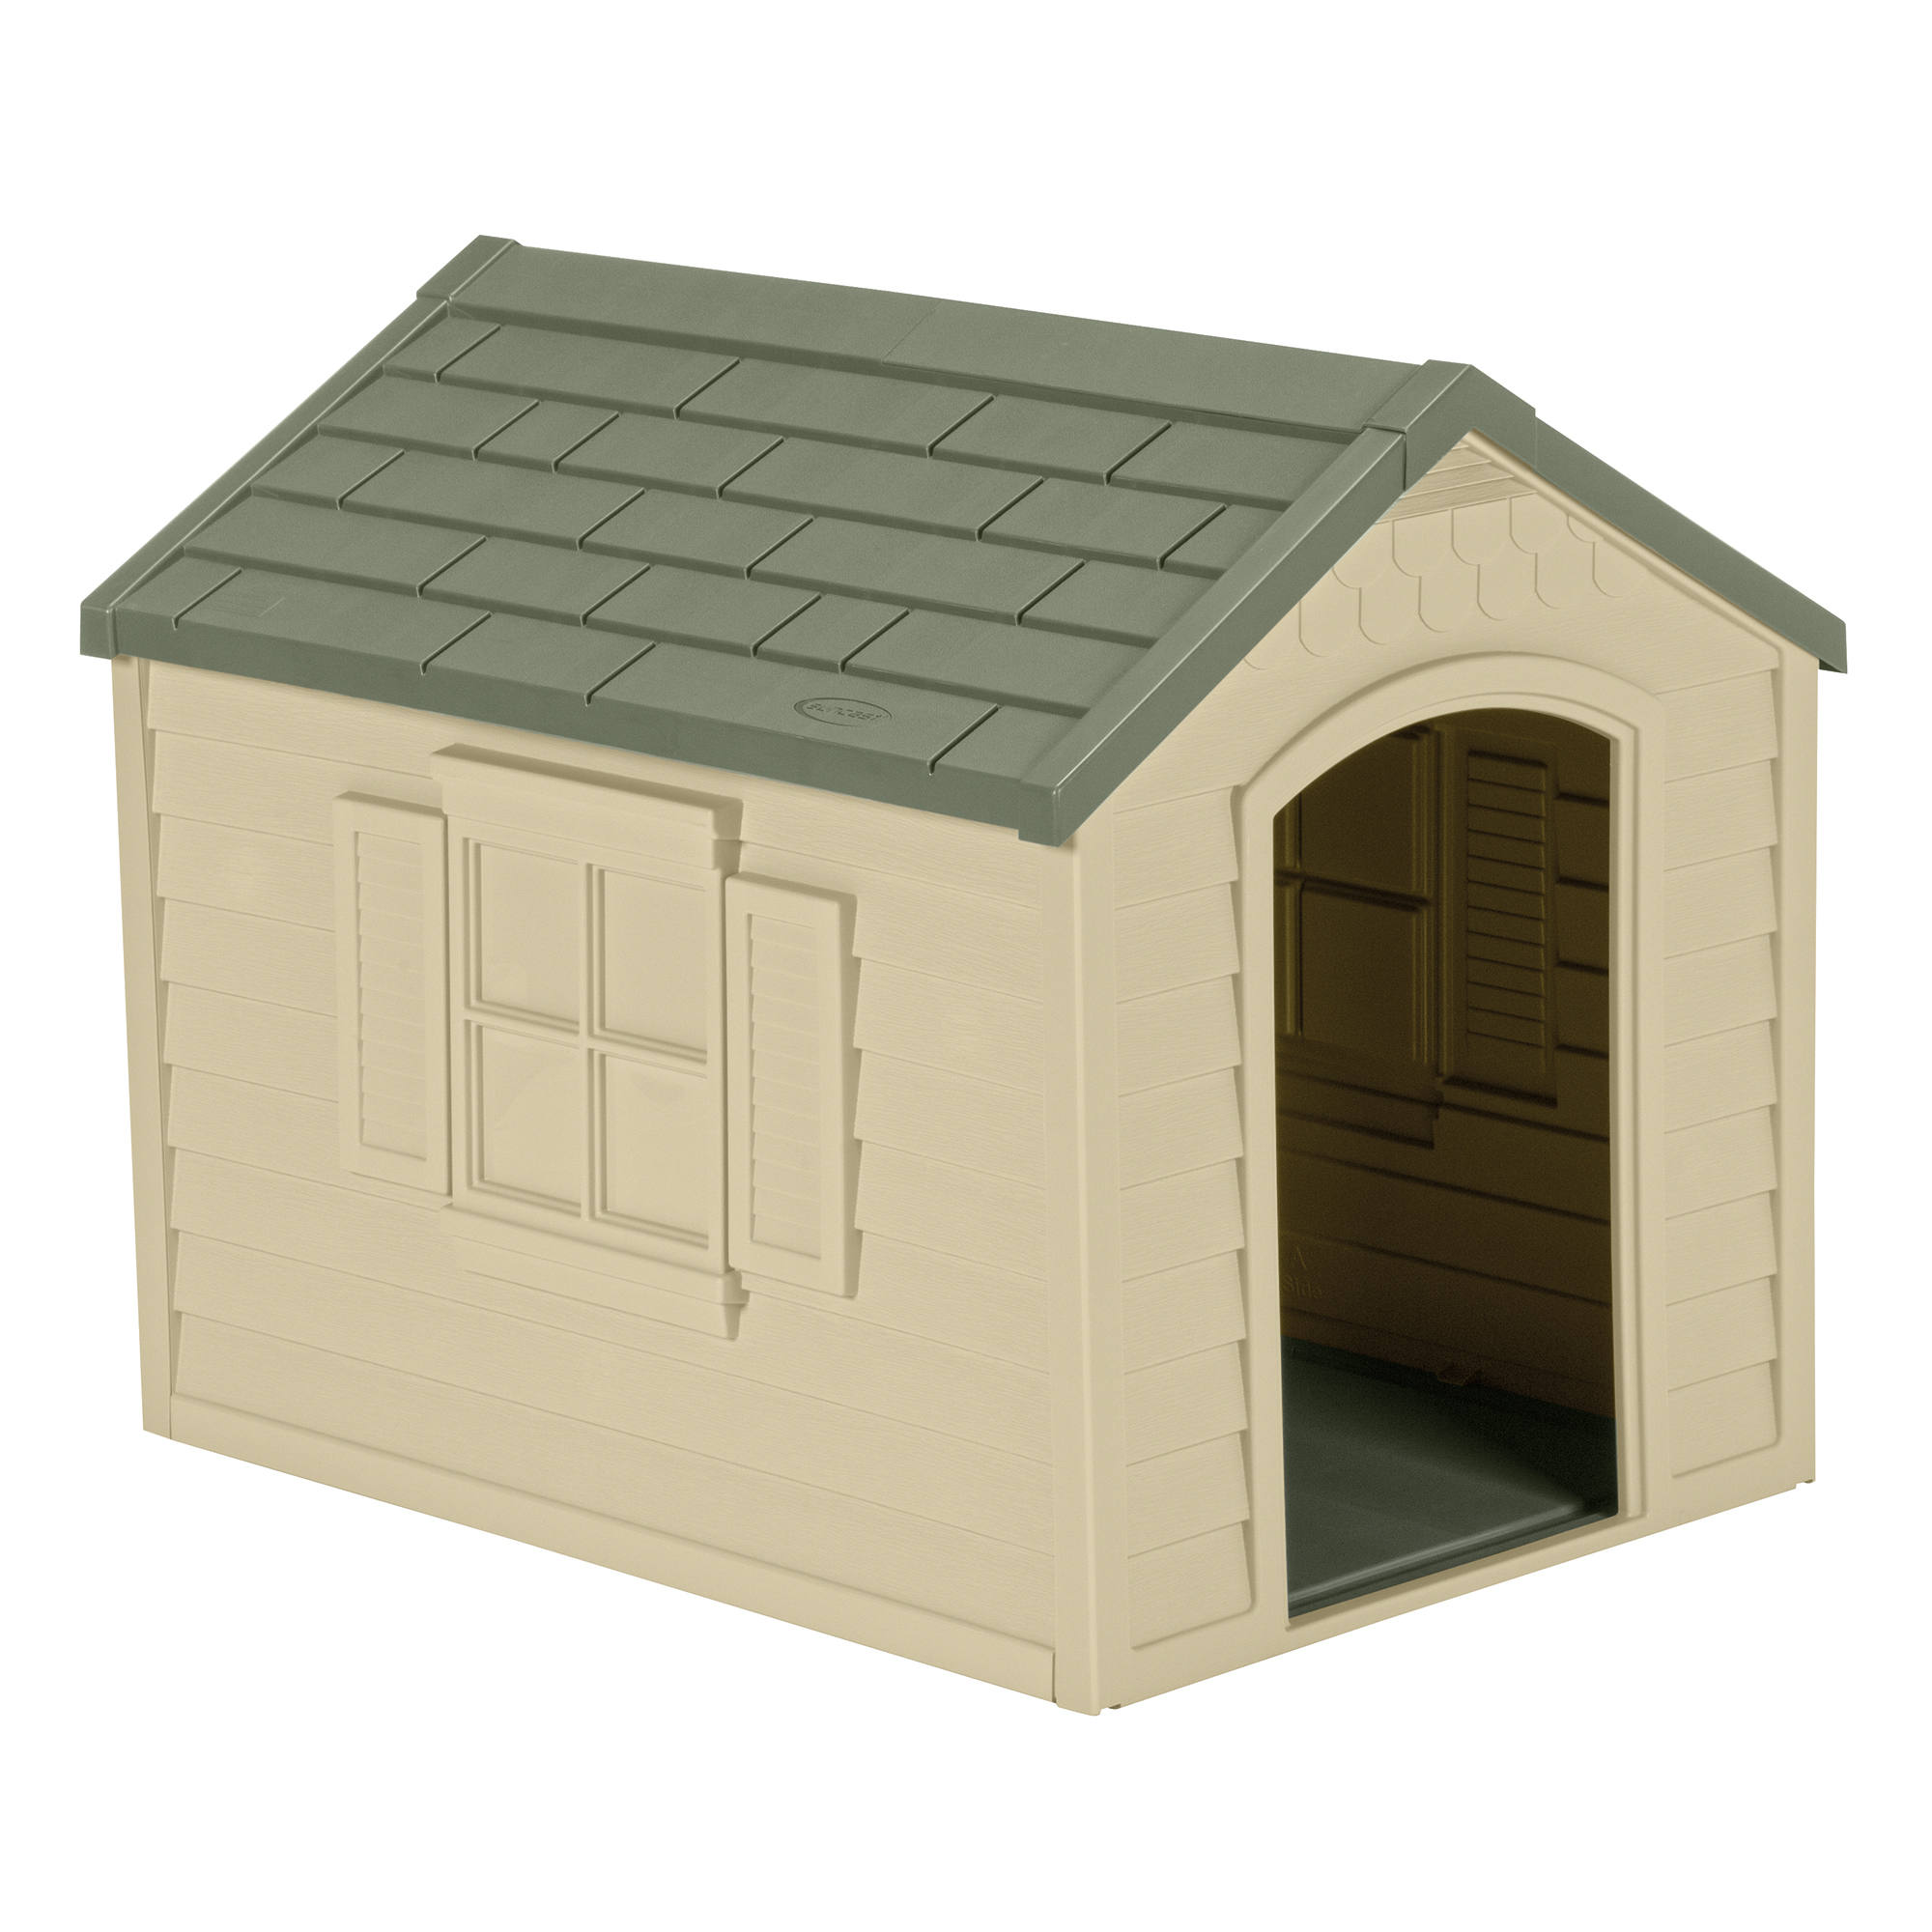 Suncast Deluxe Dog House, DH250 by Suncast